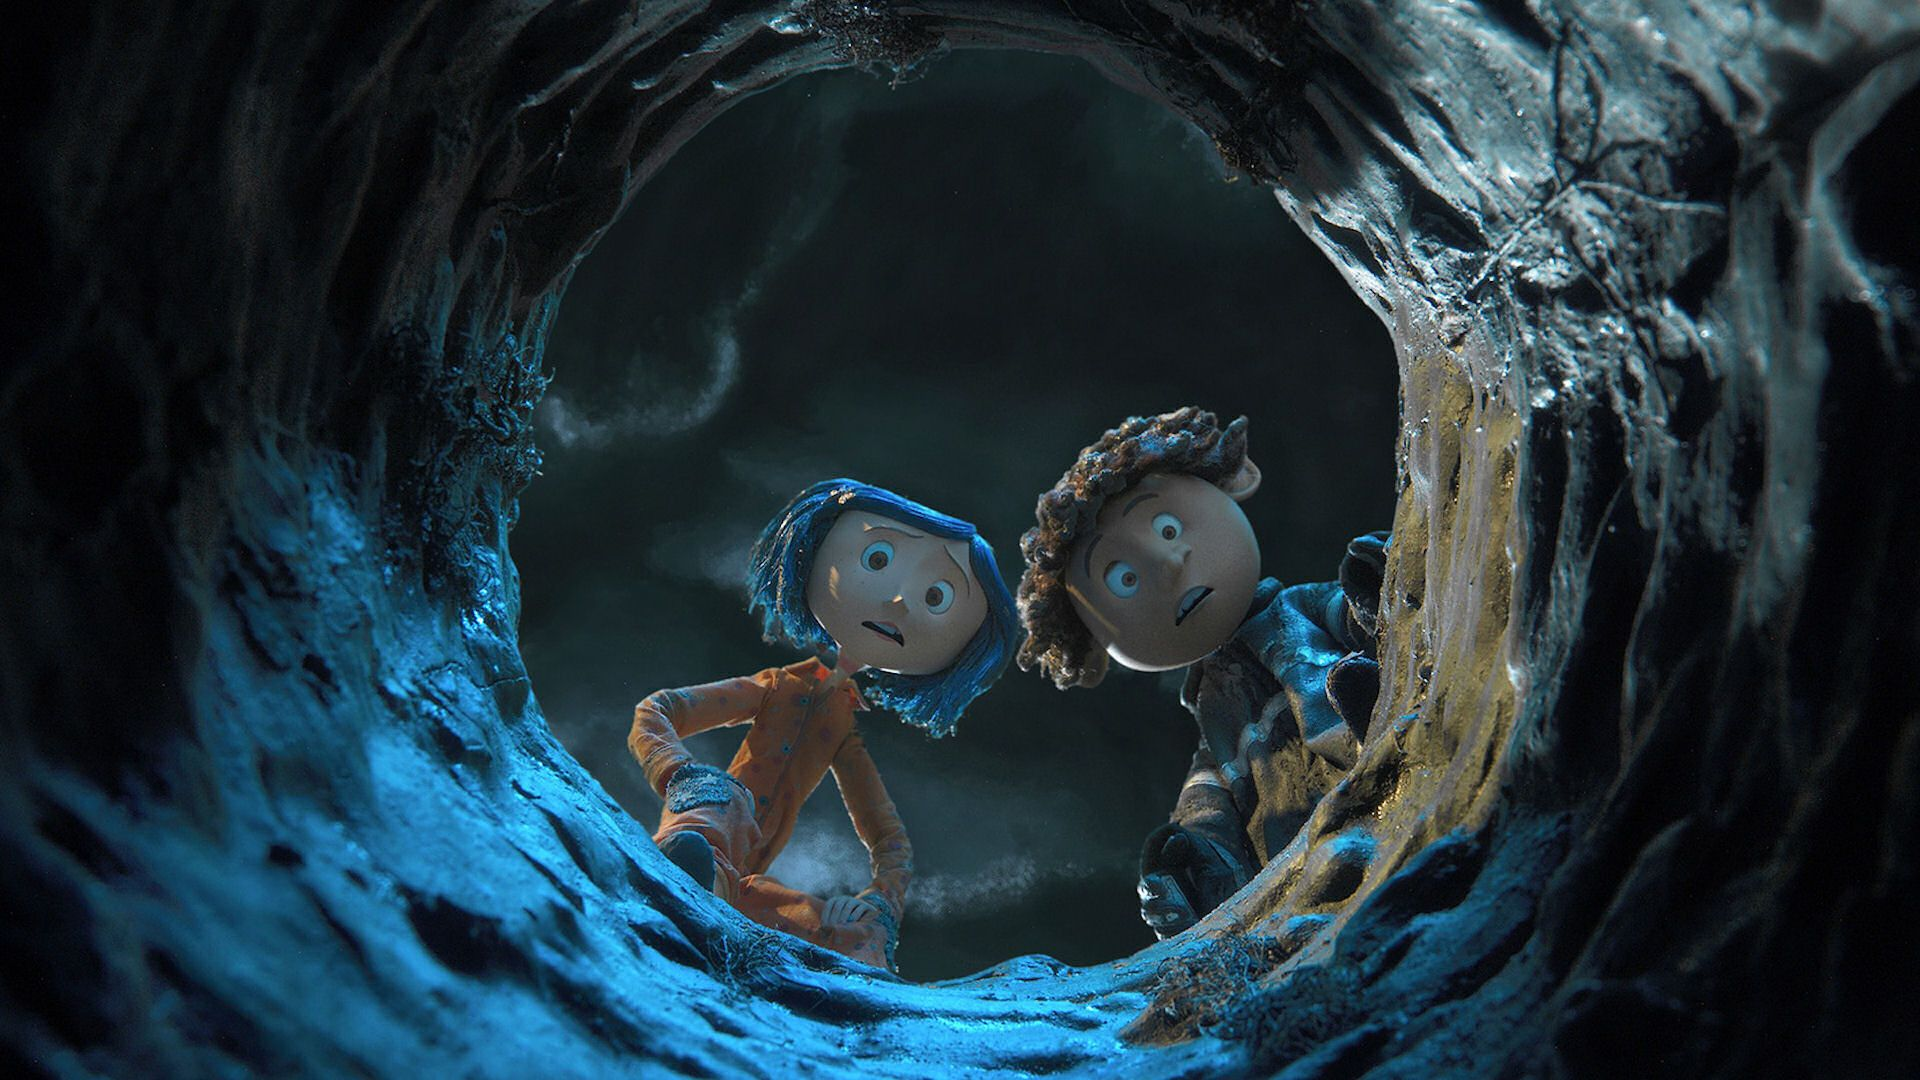 Coraline Advanced English Eawr Coraline Film Coraline Aesthetic Coraline And Wybie